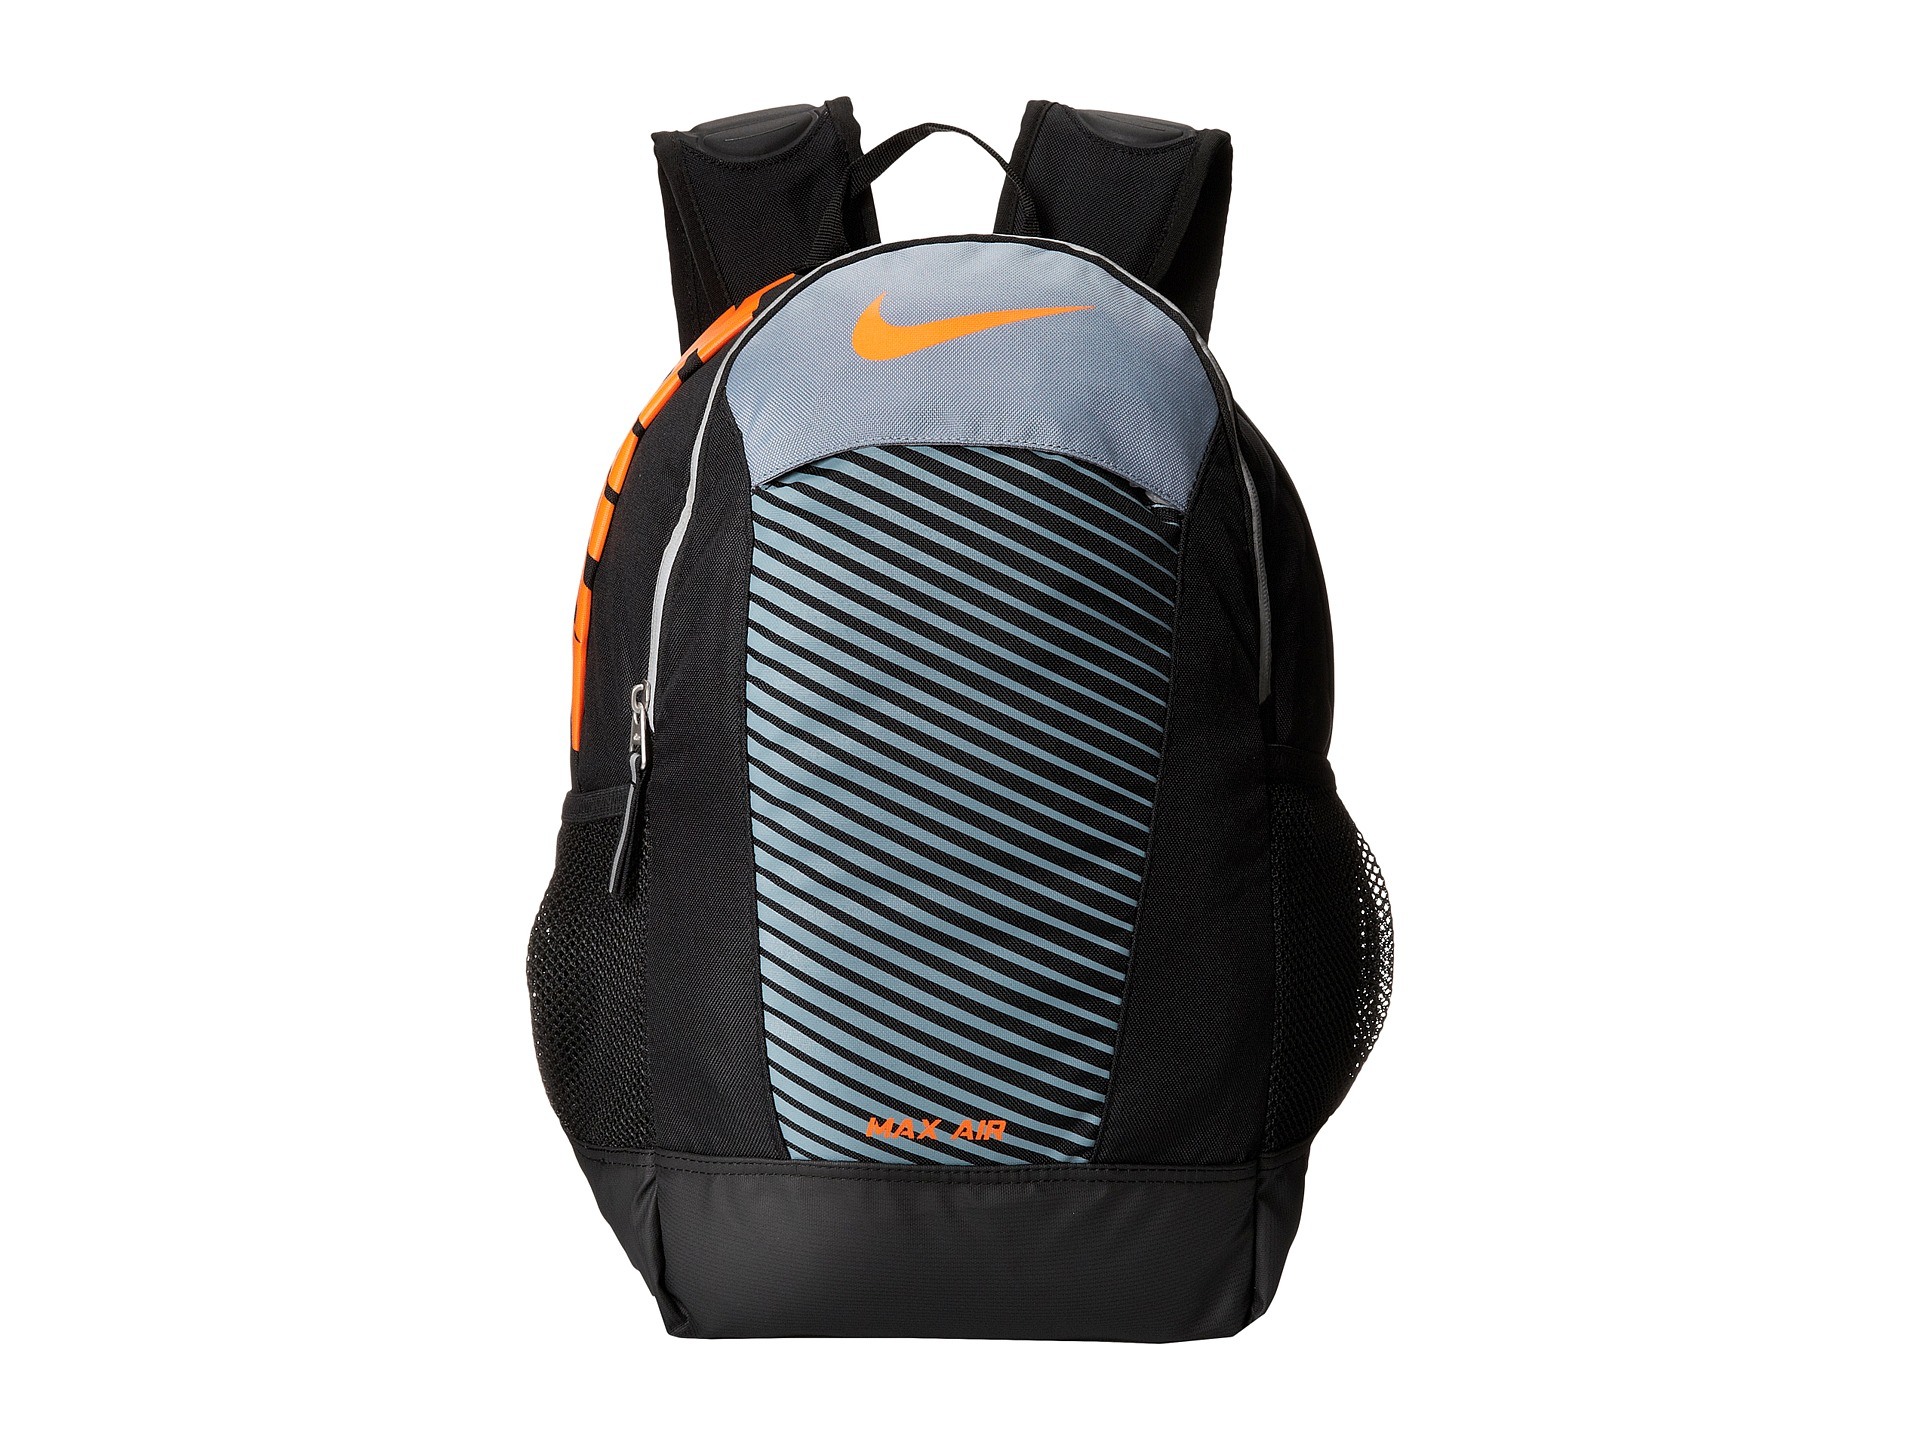 4e4abbd648d0 Lyst - Nike Young Athlete Max Air Team Training Small Backpack in ...